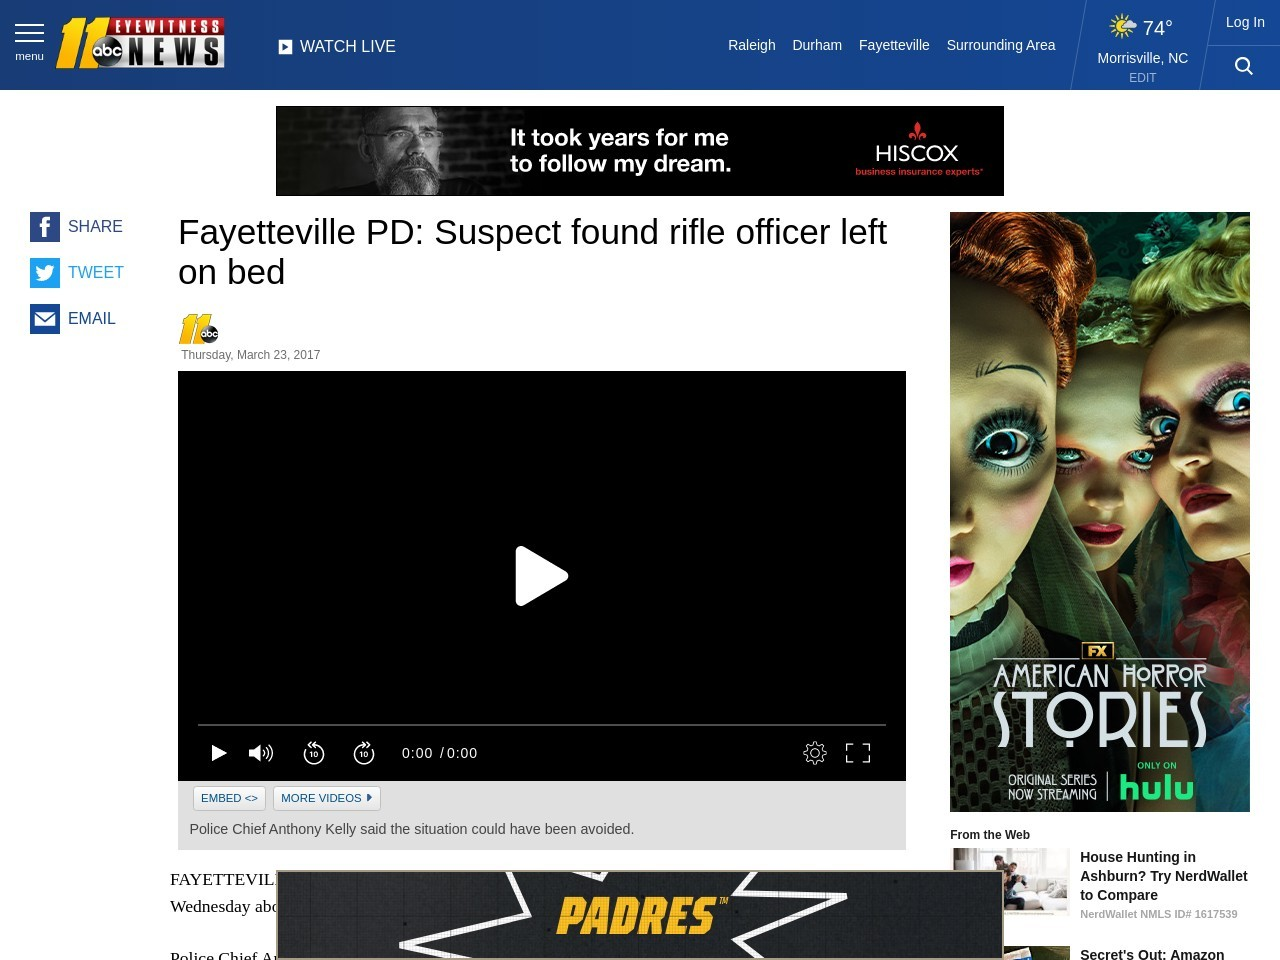 Fayetteville PD: Suspect found rifle officer left on bed